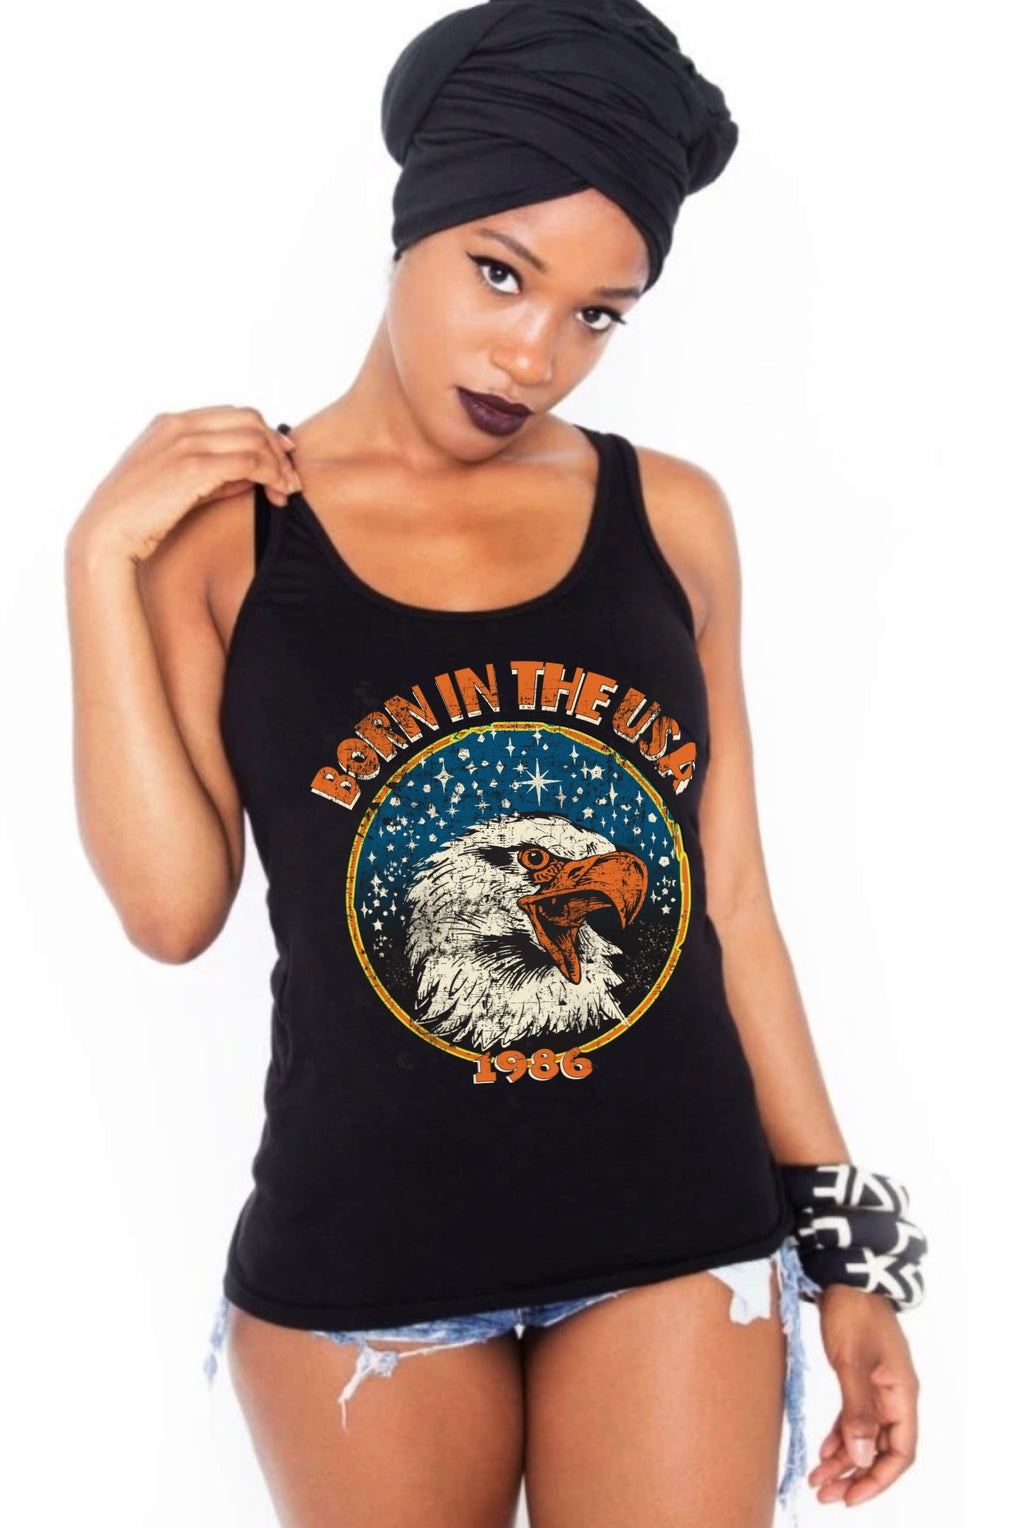 Born in the USA racerback tank top